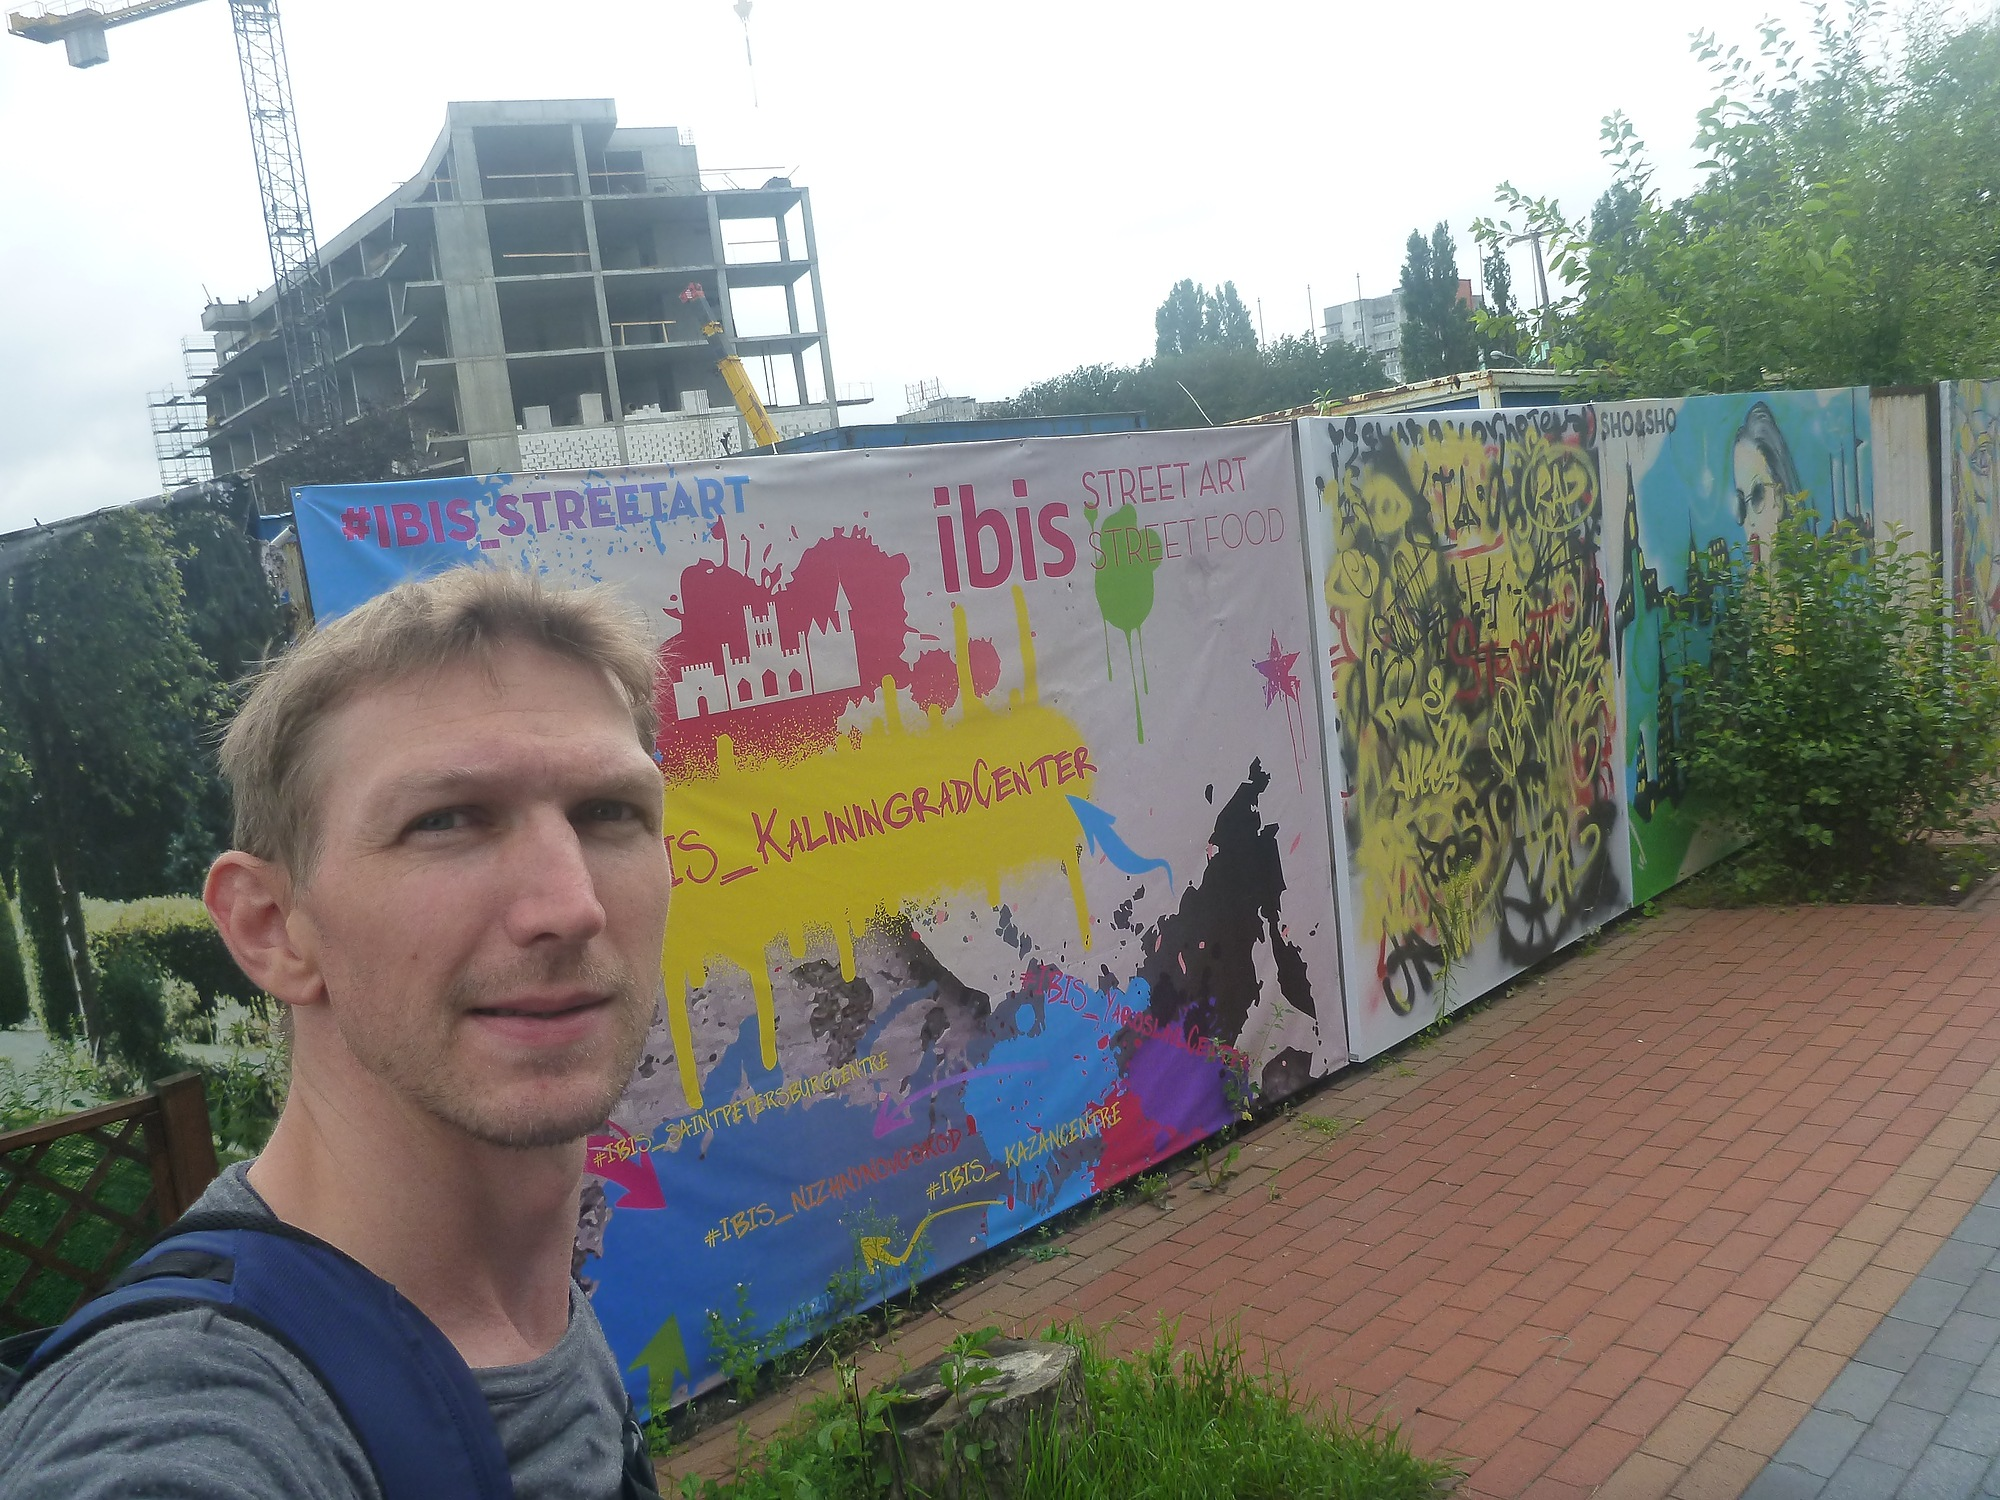 Staying at the Ibis Kaliningrad Center in Kaliningrad, Russia